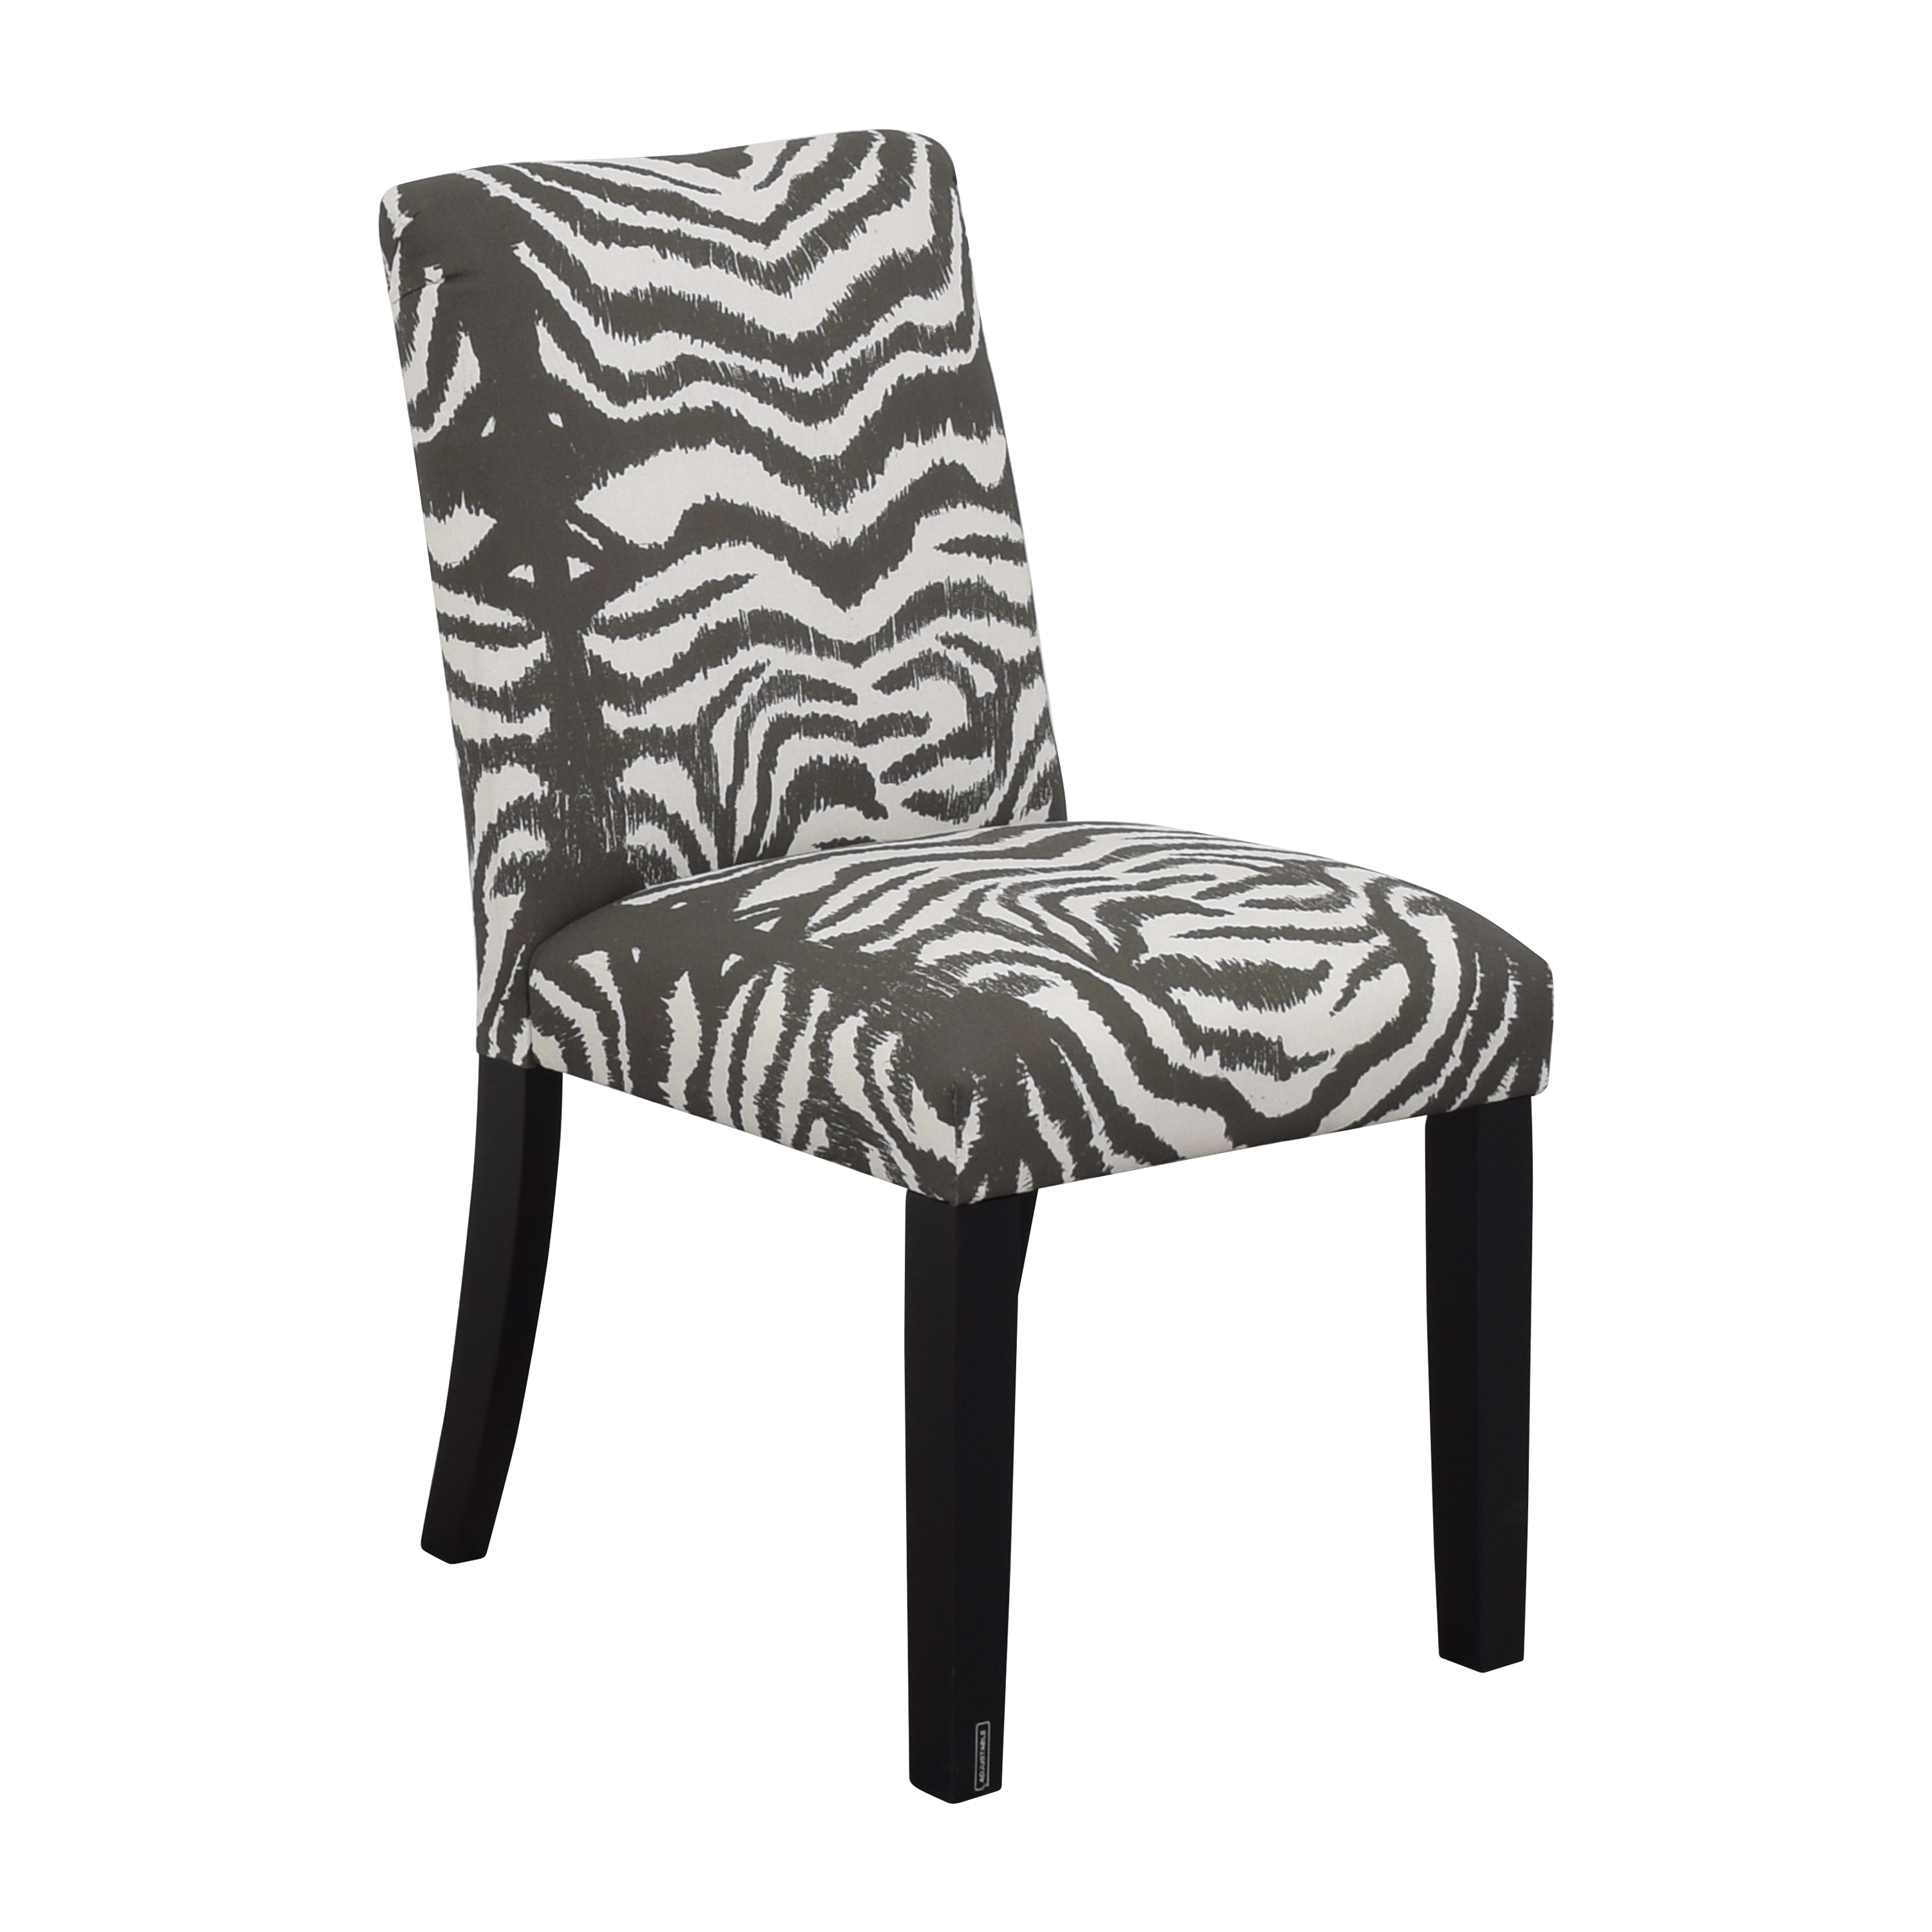 The Inside The Inside Zebra Classic Dining Chair